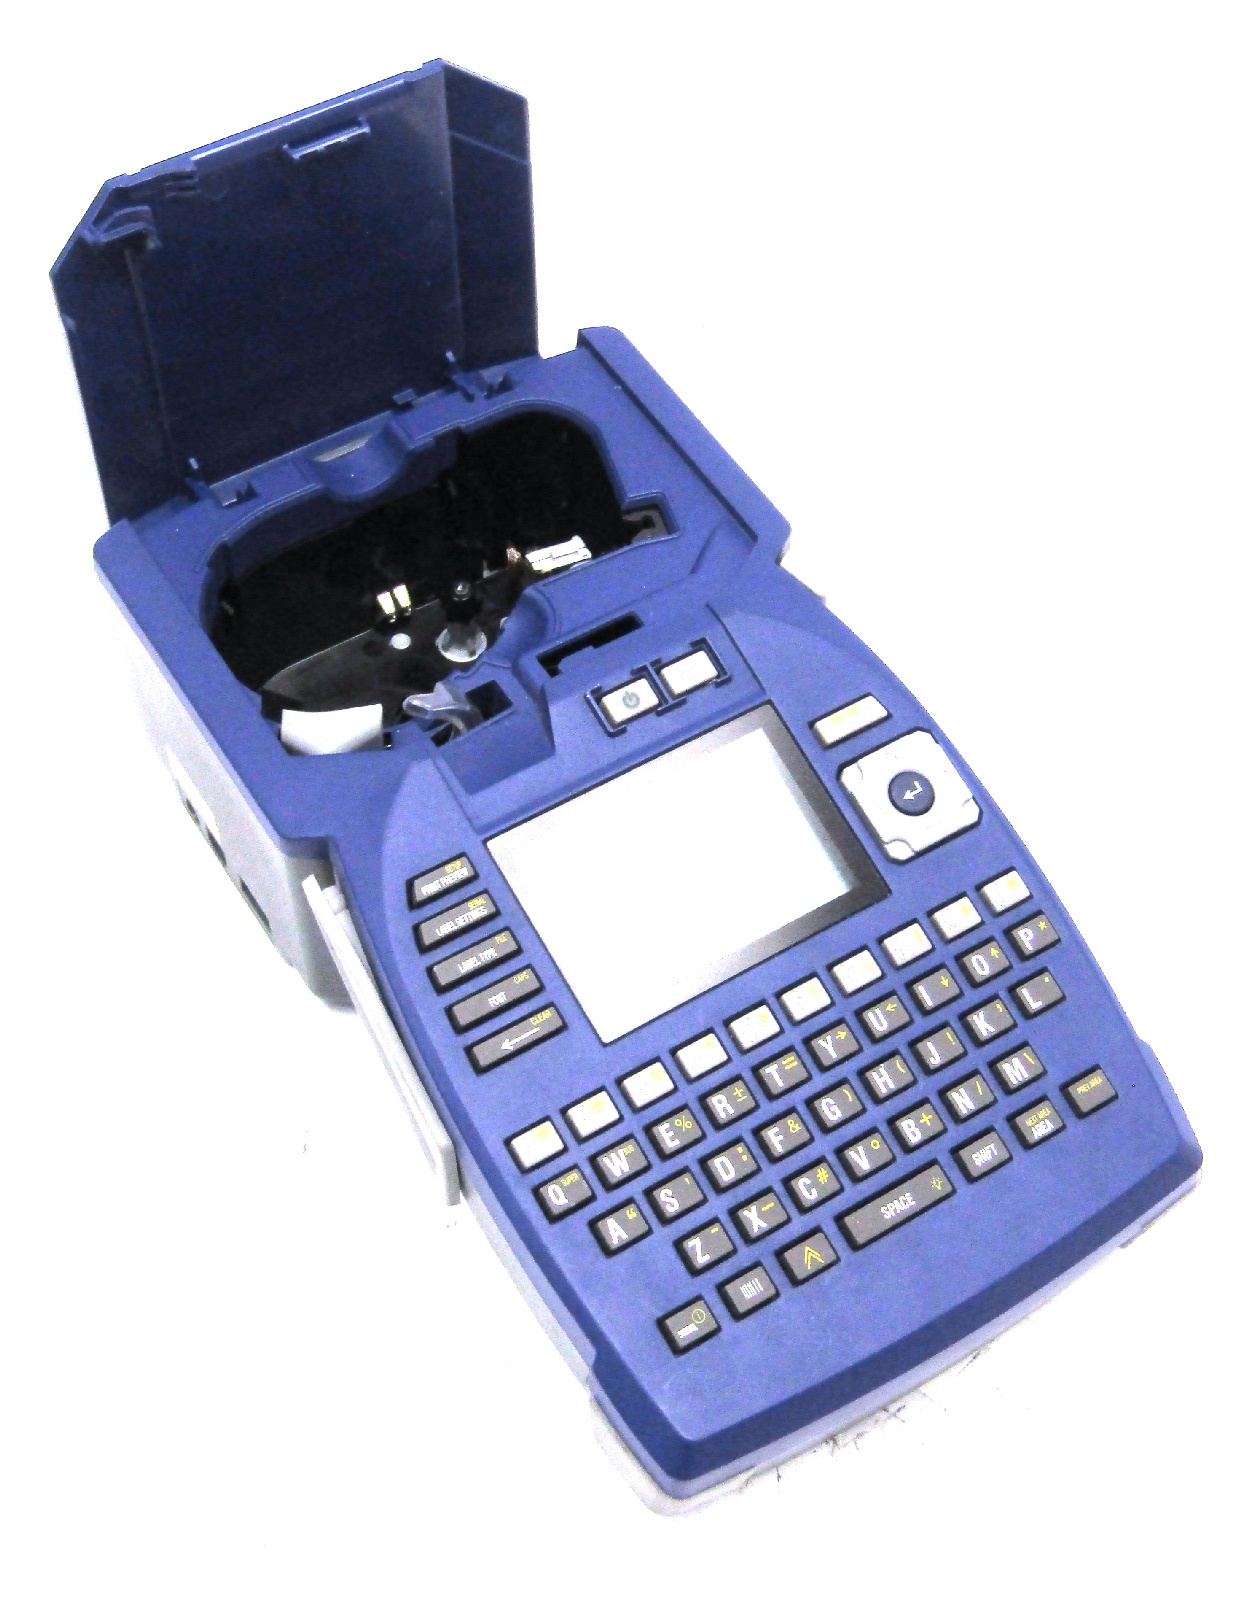 This is a photo of Superb 300 Dpi Label Printer